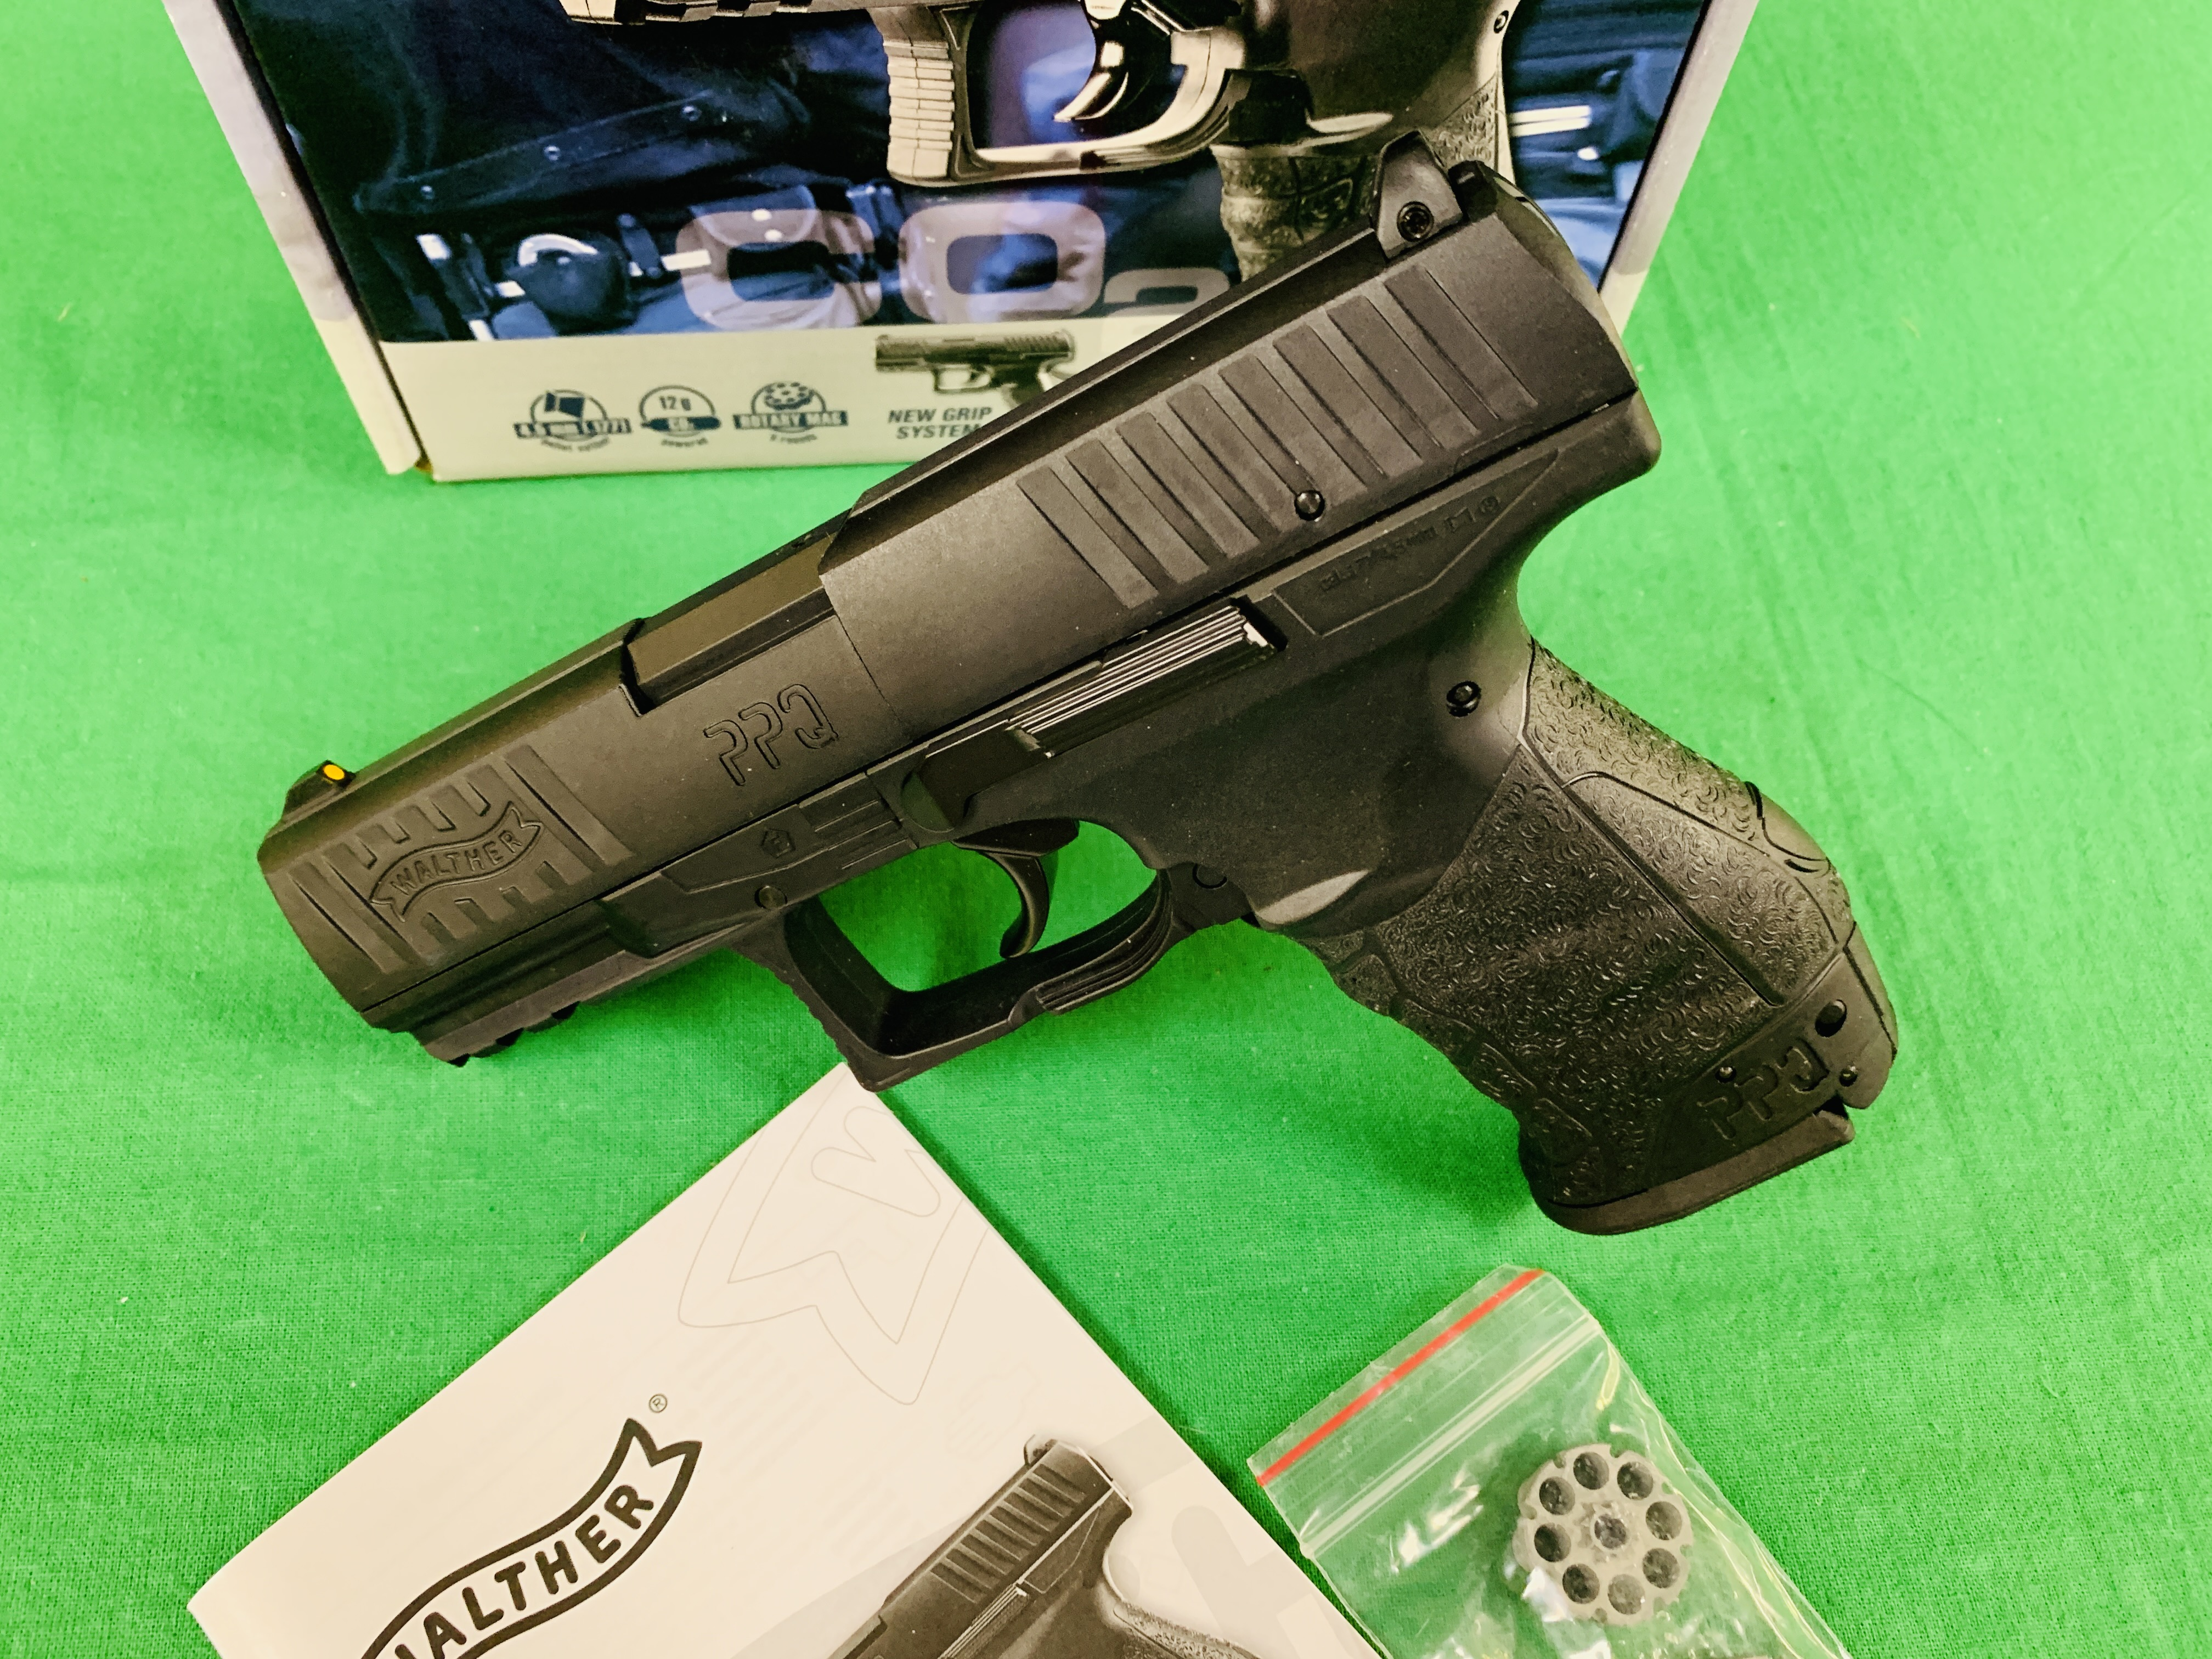 A WALTHER PPQ . - Image 6 of 6